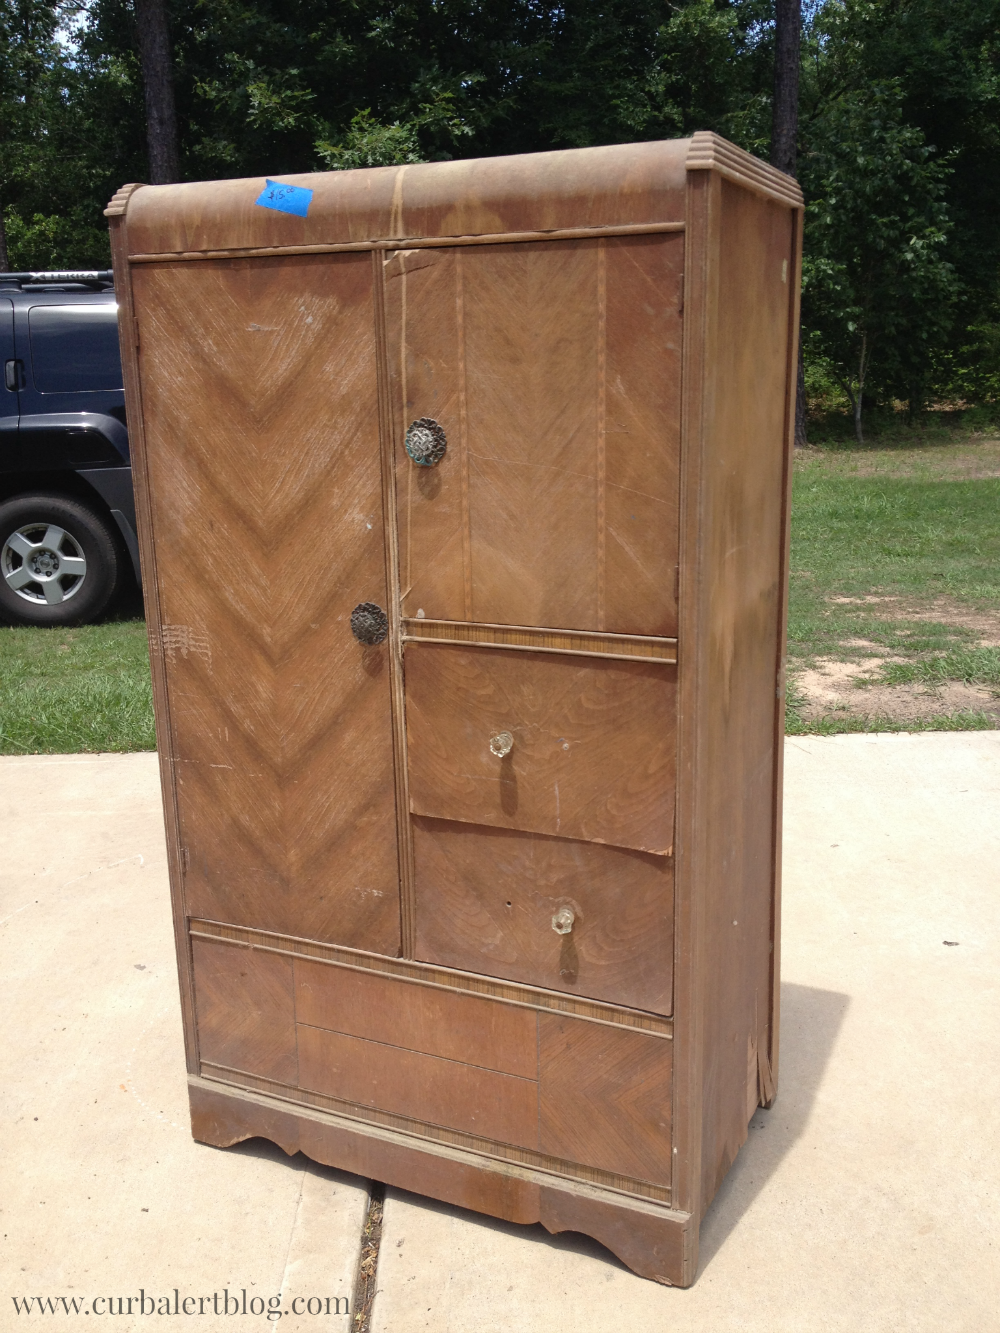 Curb Alert! : Waterfall Style Antique Chifferobe Wardrobe